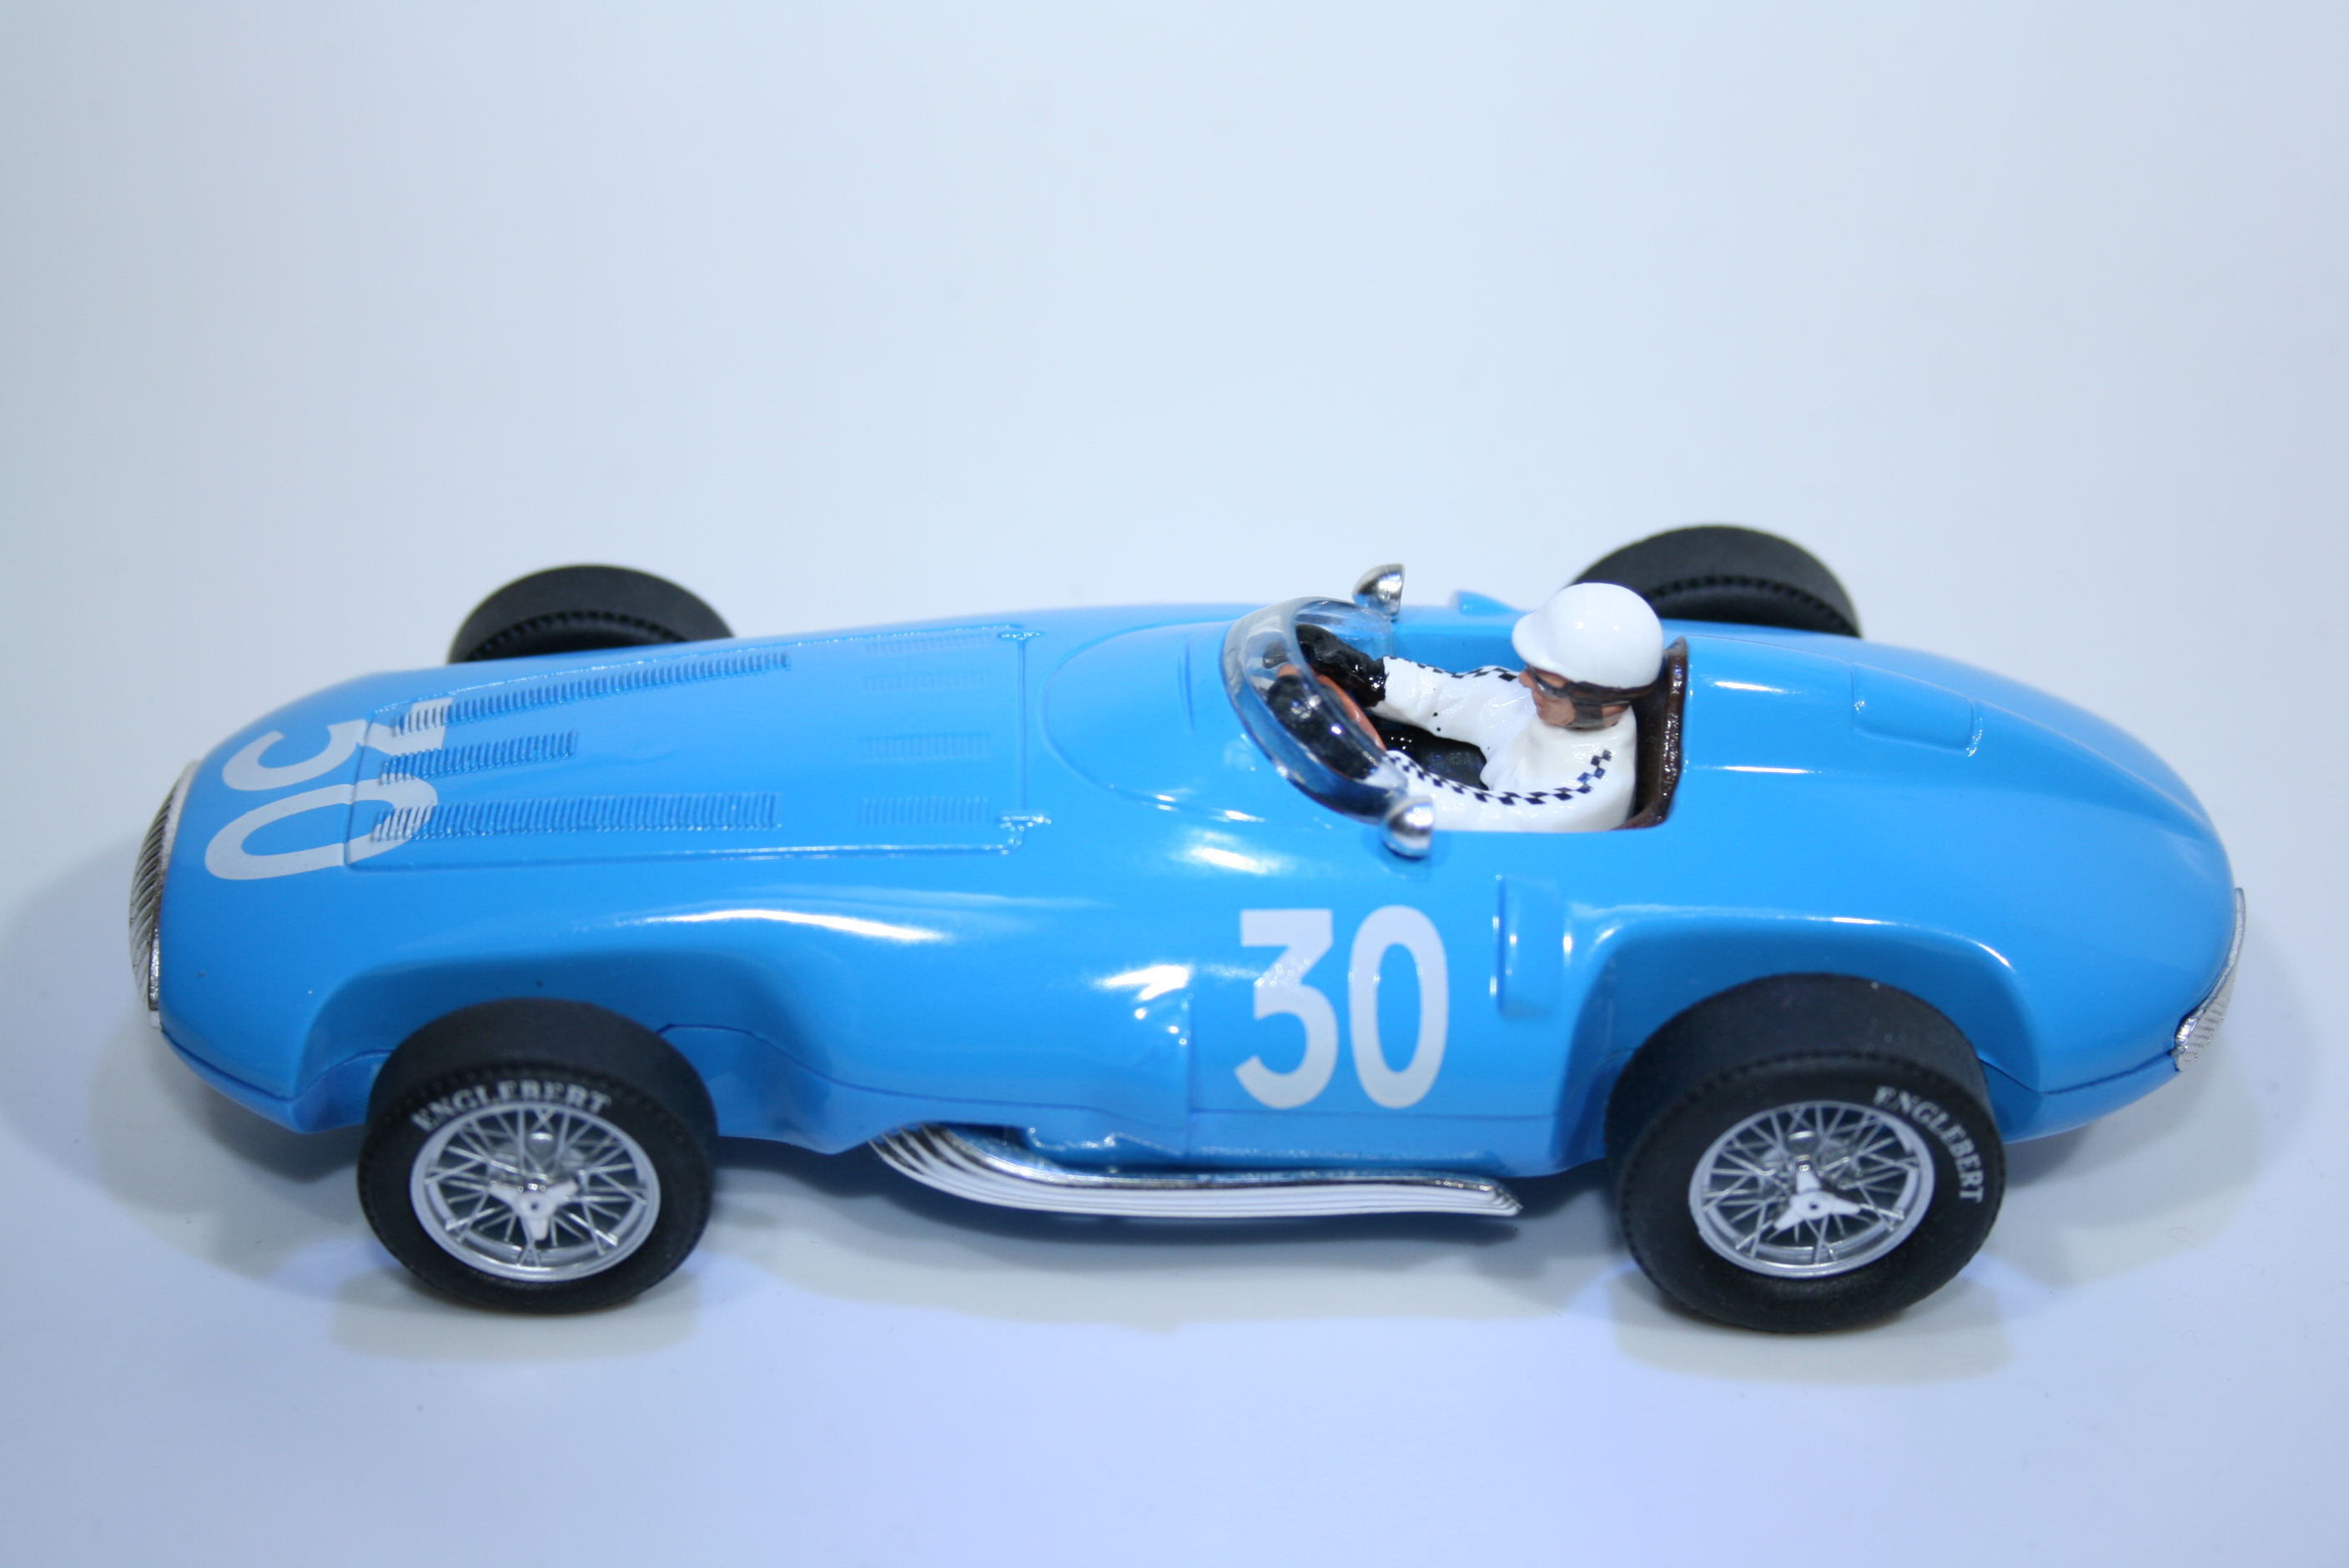 410 Gordini T32 1956 R Manzon Cartrix 0960 2008 Boxed